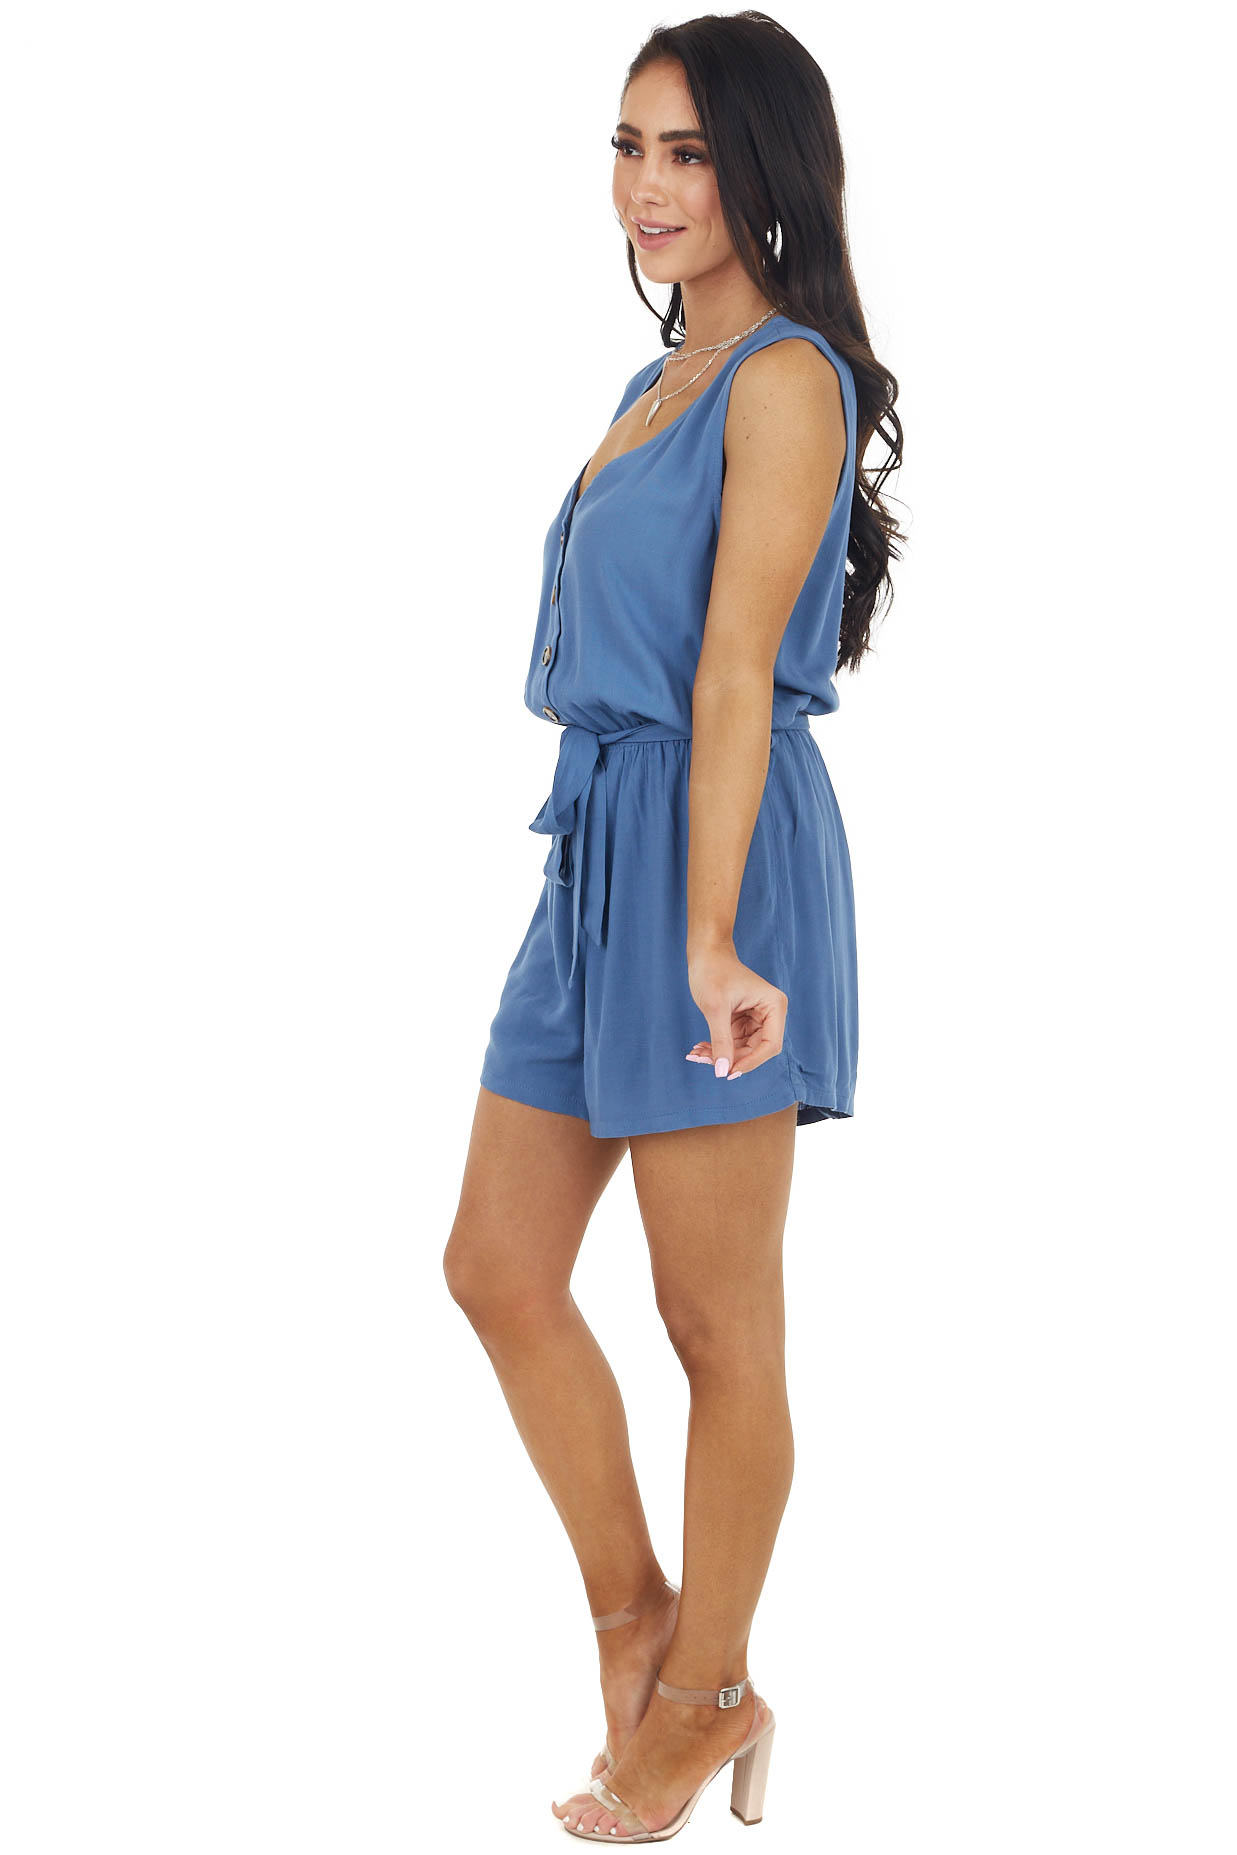 Dusty Blue Woven Sleeveless Button Up Romper with Front Tie